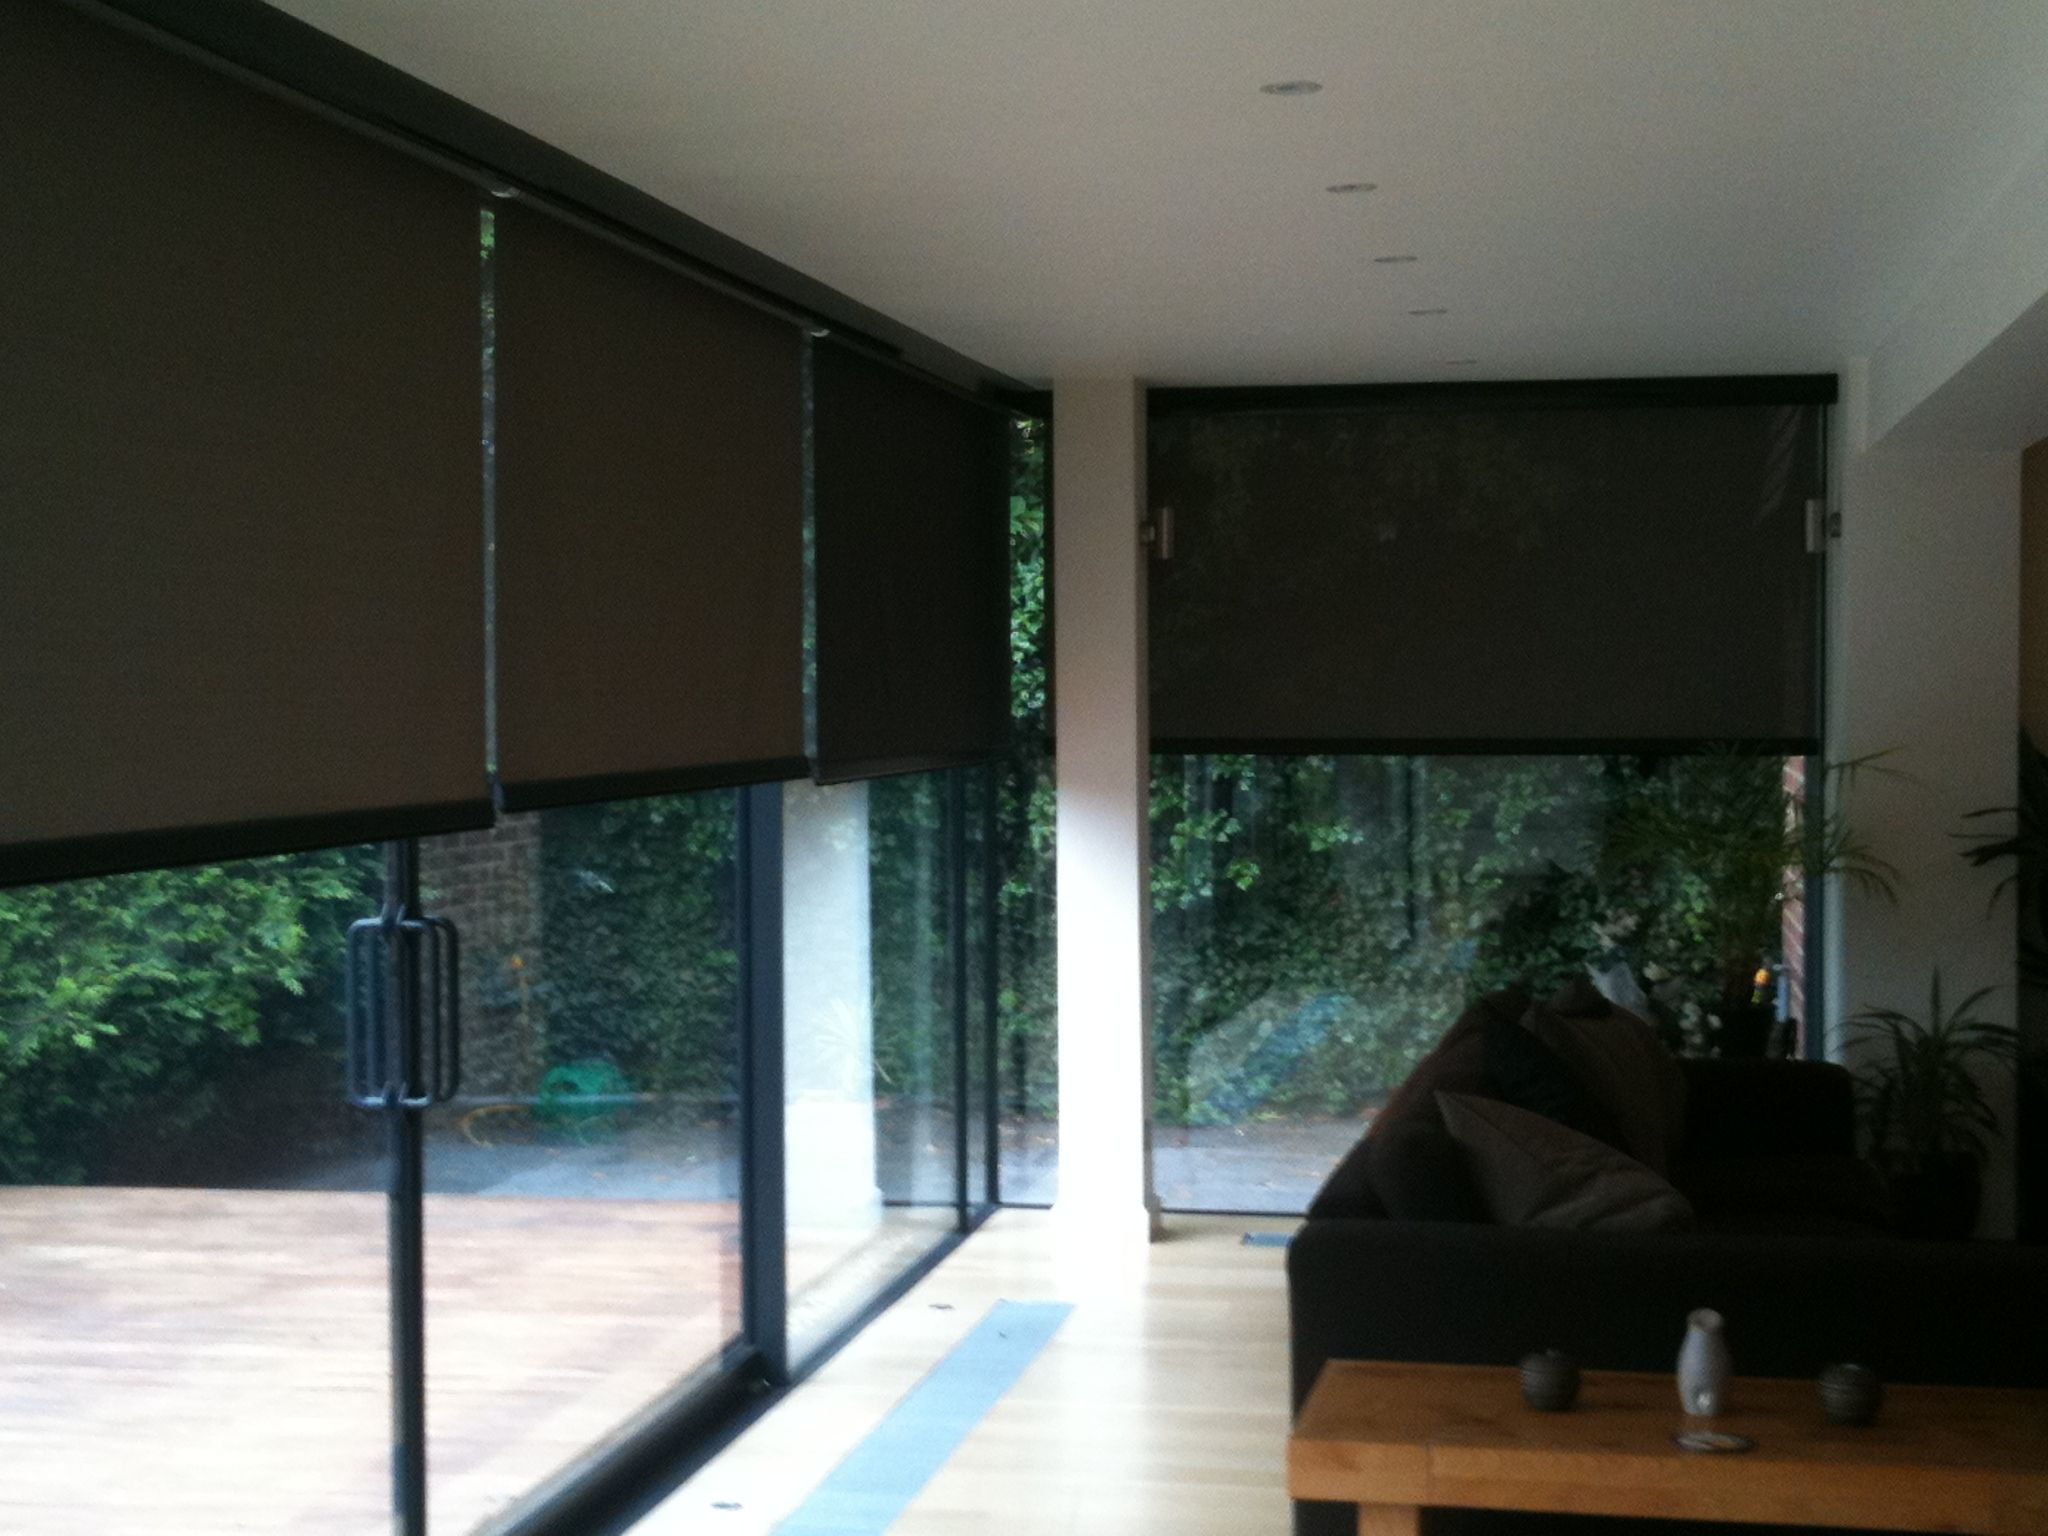 Thermal roller blinds for patio doors httpbukuweb thermal roller blinds for patio doors planetlyrics Image collections